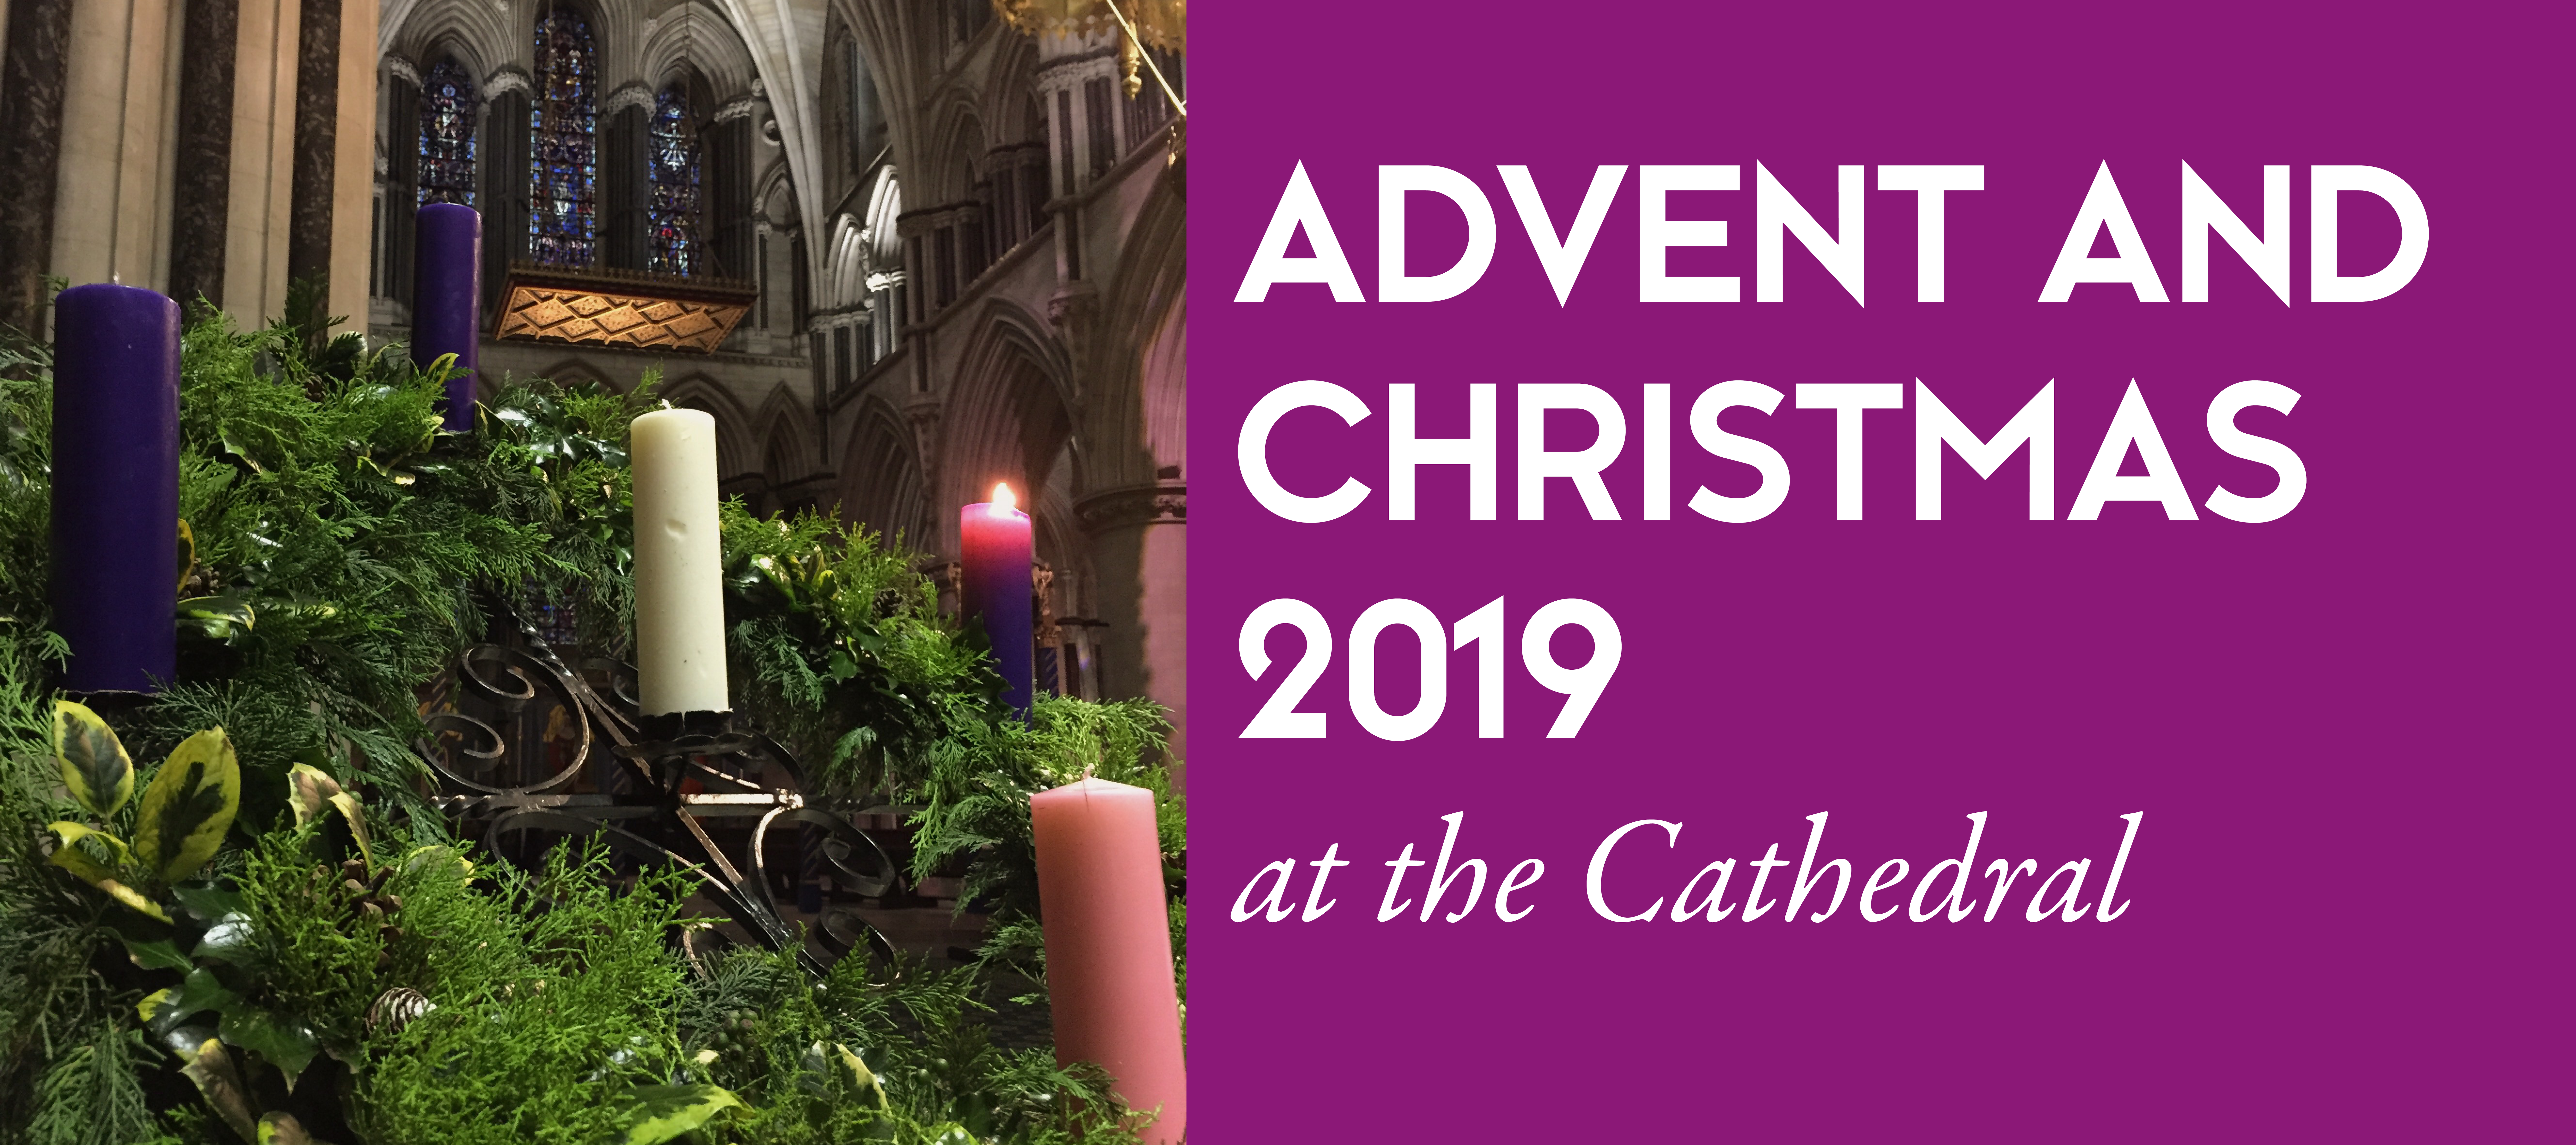 Advent and Christmas at the Cathedral